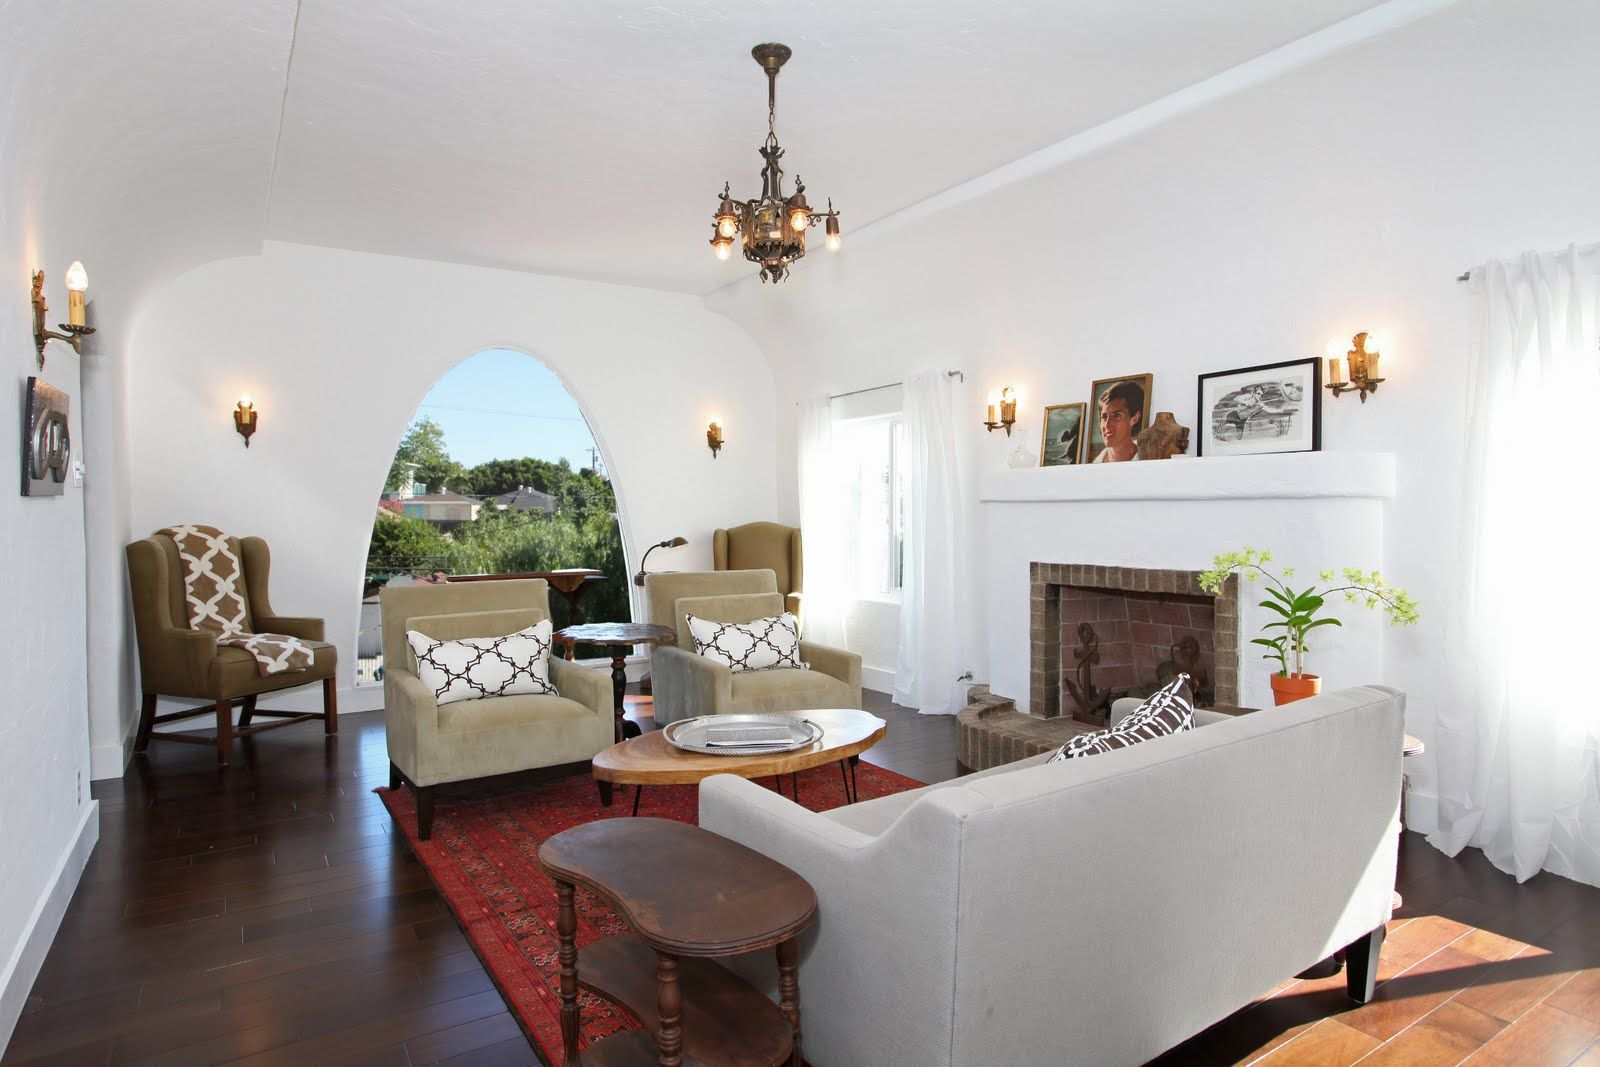 Living room of a Spanish style Los Angeles area house features a ...